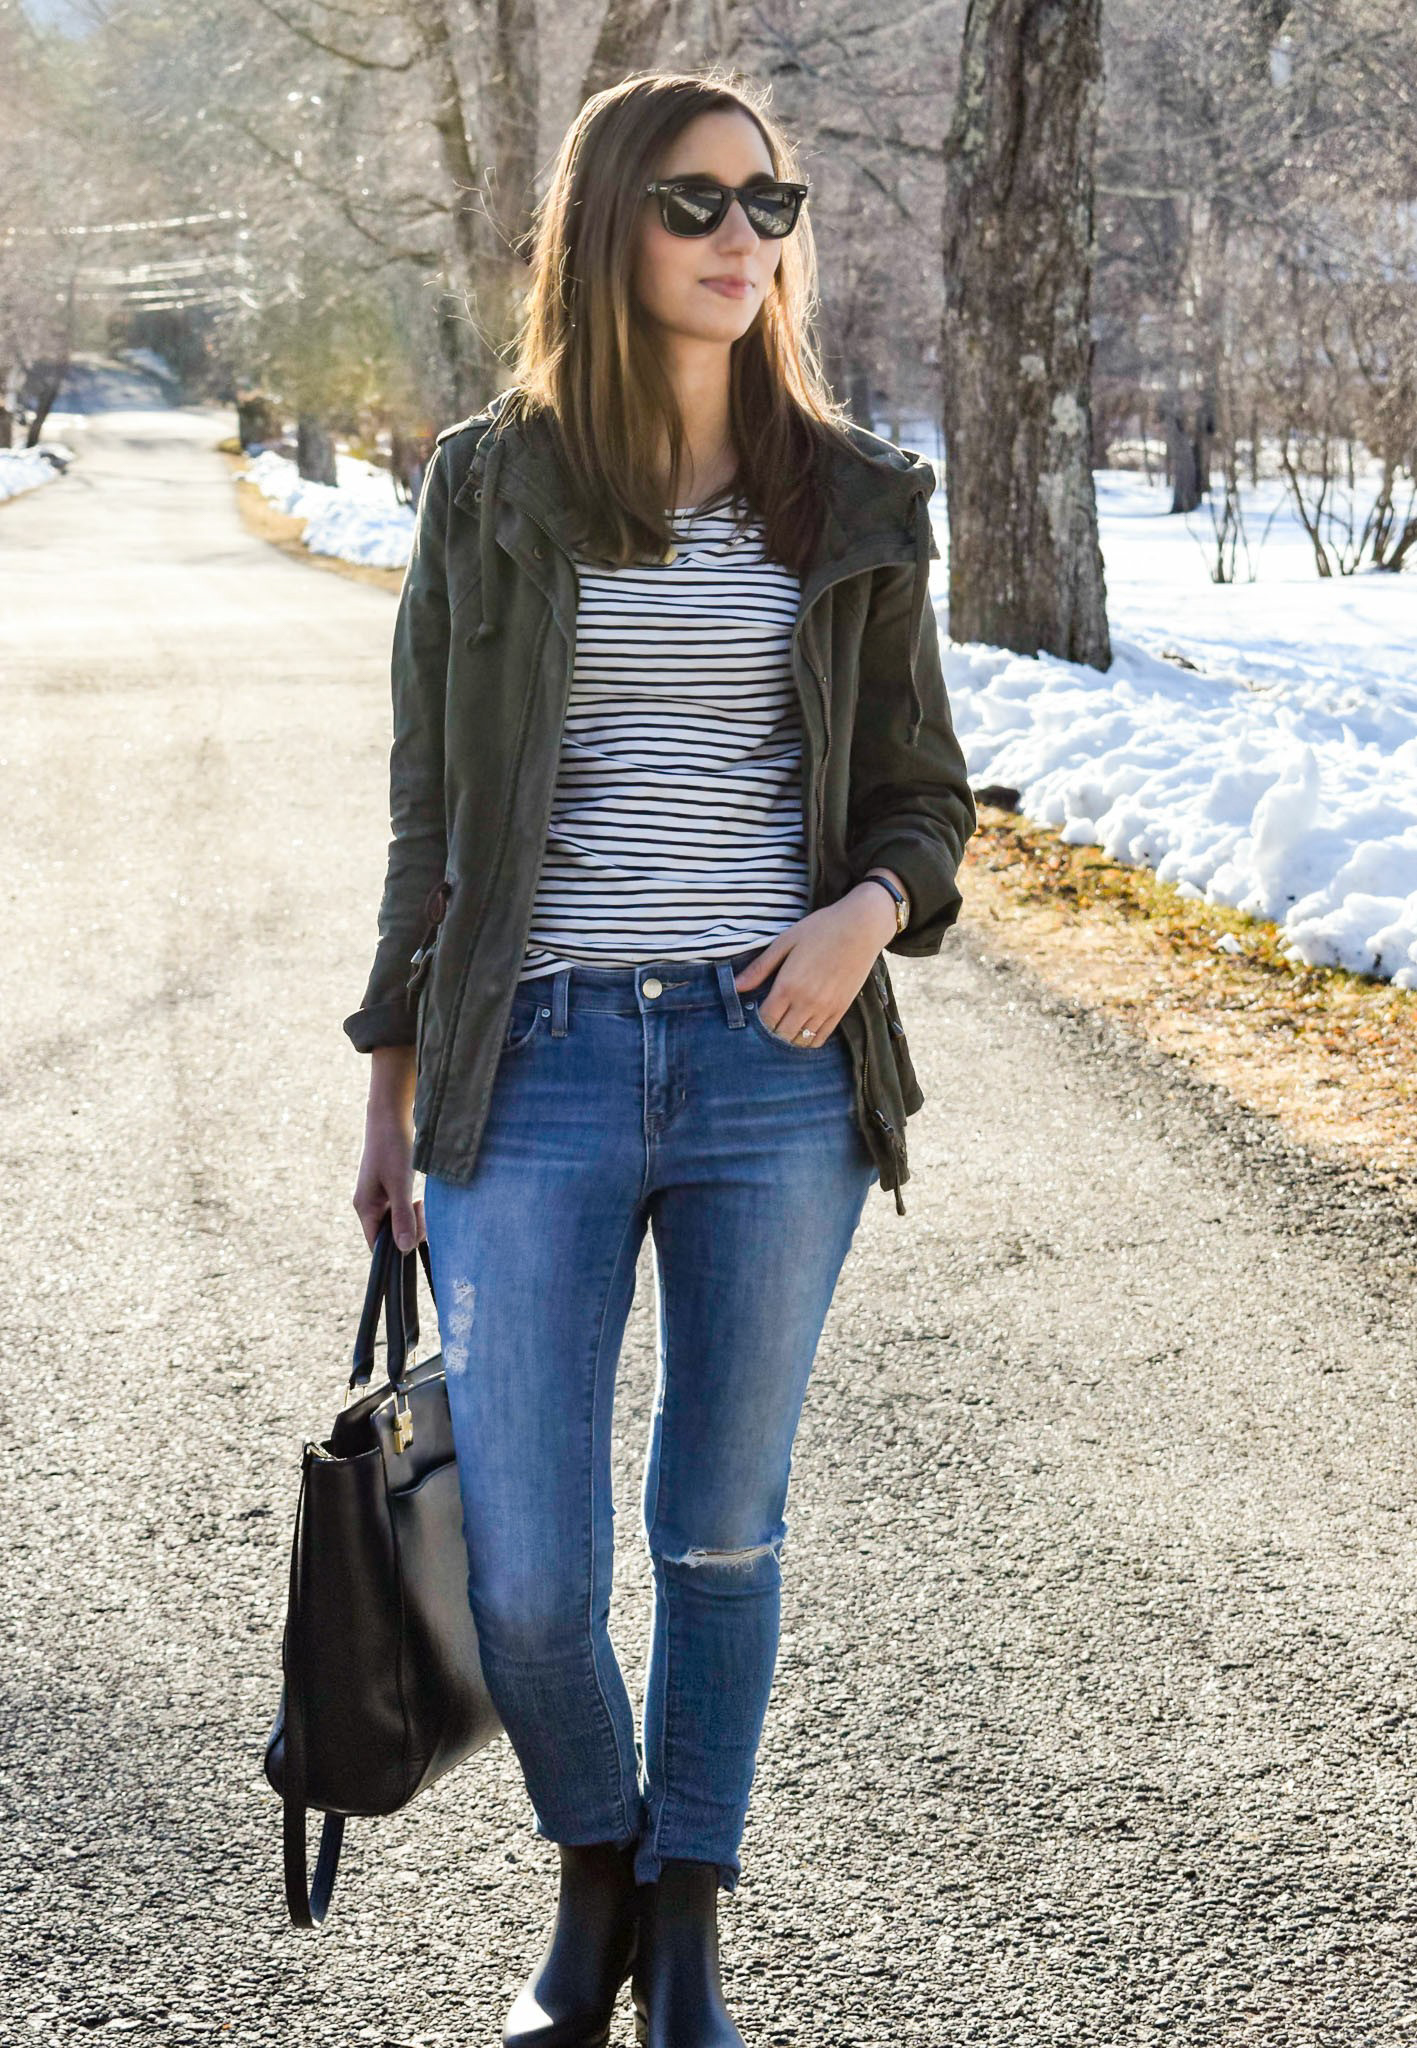 Wearing a military green jacket, striped shirt, distressed denim, black tote bag and black Sam Edelman rain boots